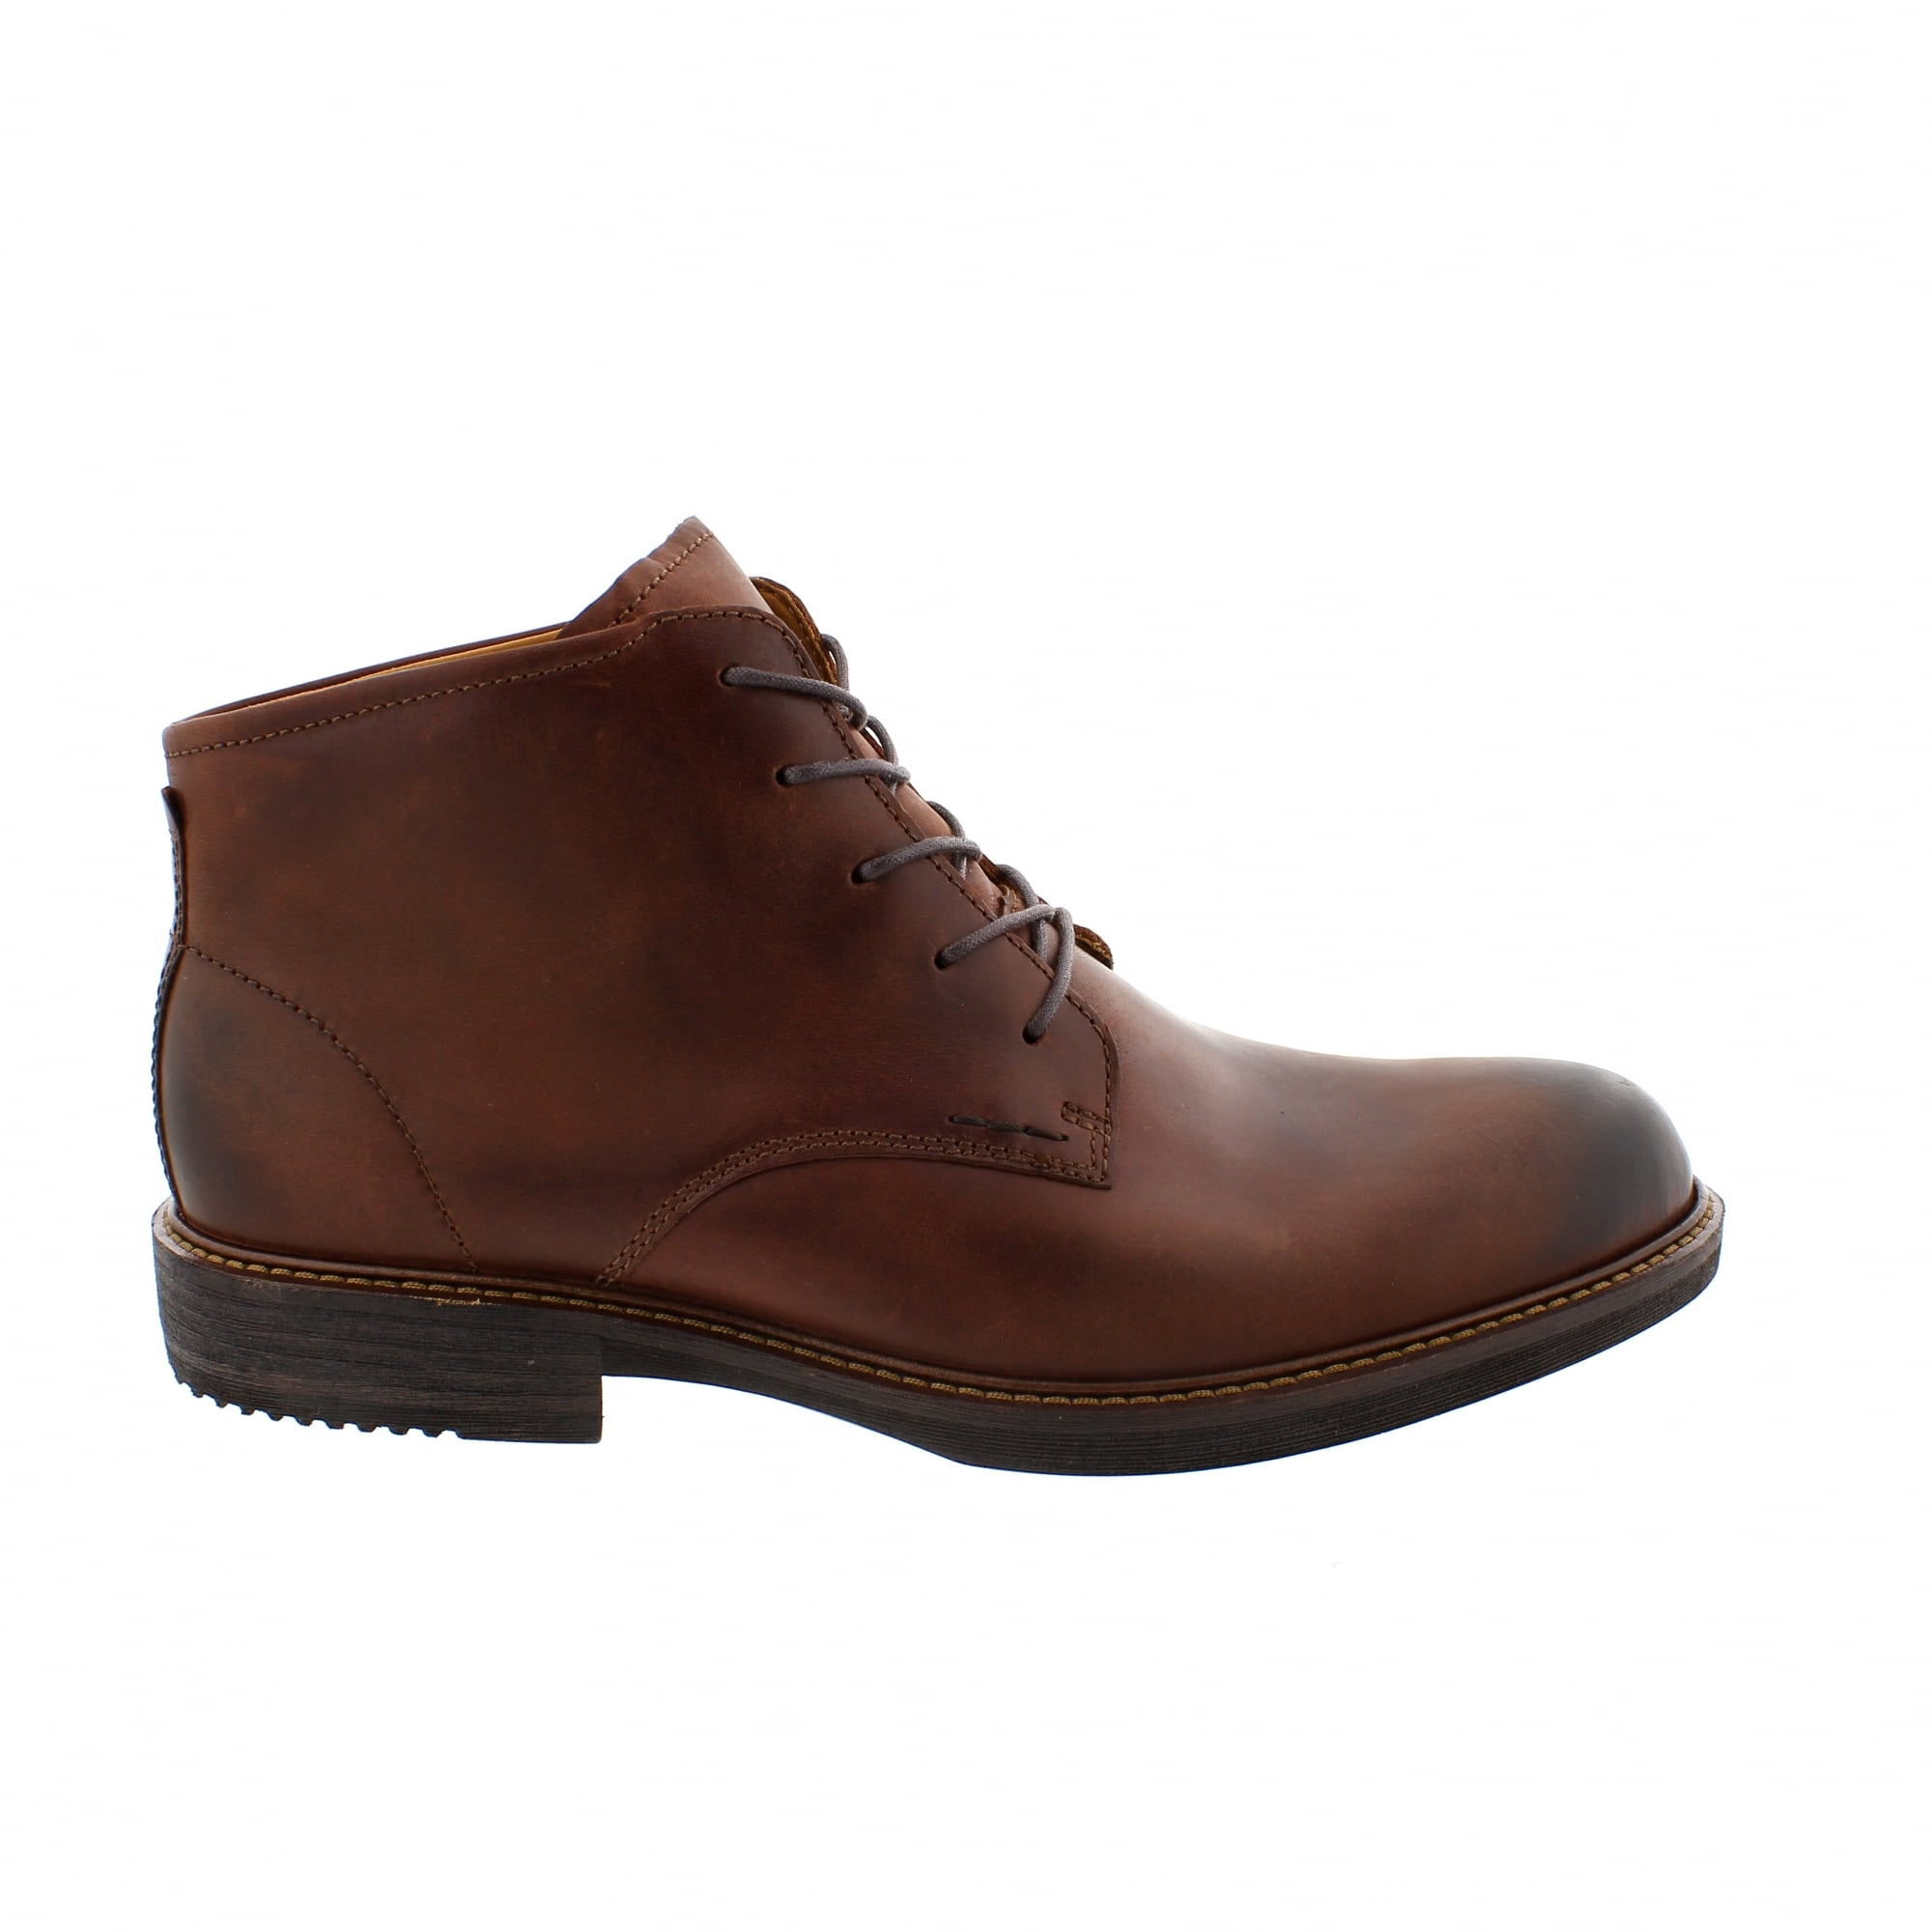 72f208cb3fee1 Ecco Kenton | 512054-02014 - Mens from Rogerson Shoes UK